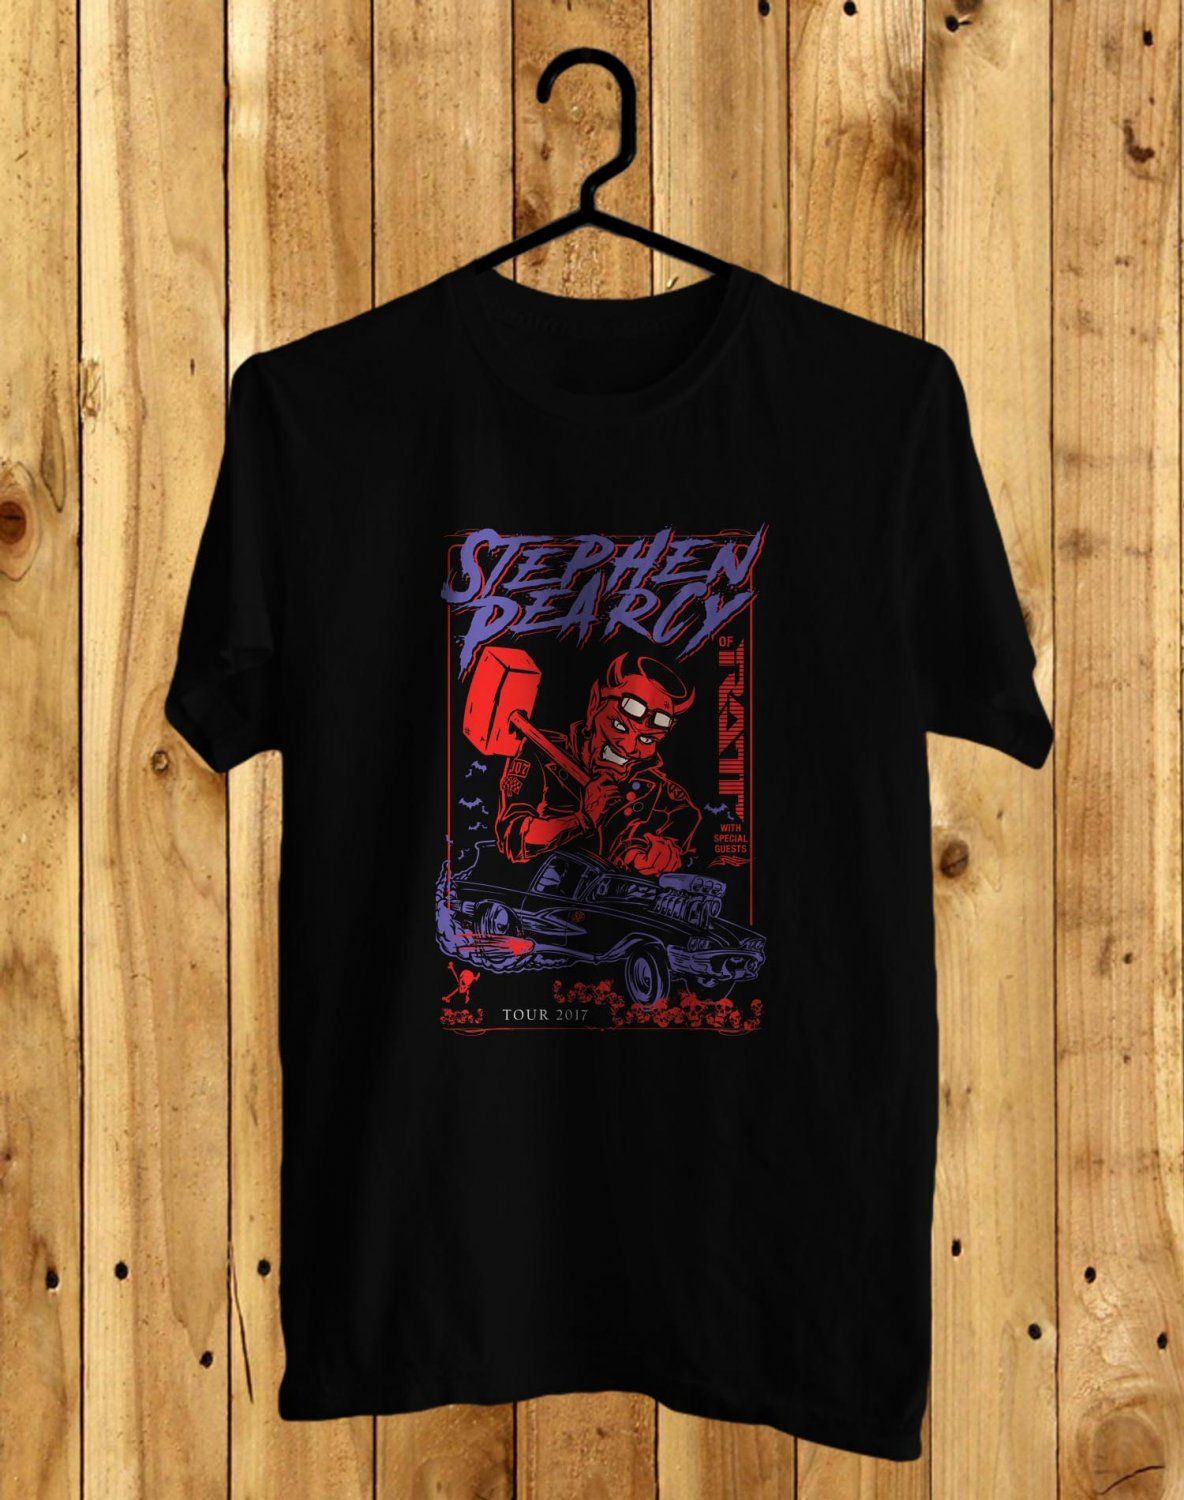 Stephen Pearcy Tour 2017 Black Tee's Front Side by Complexart z3